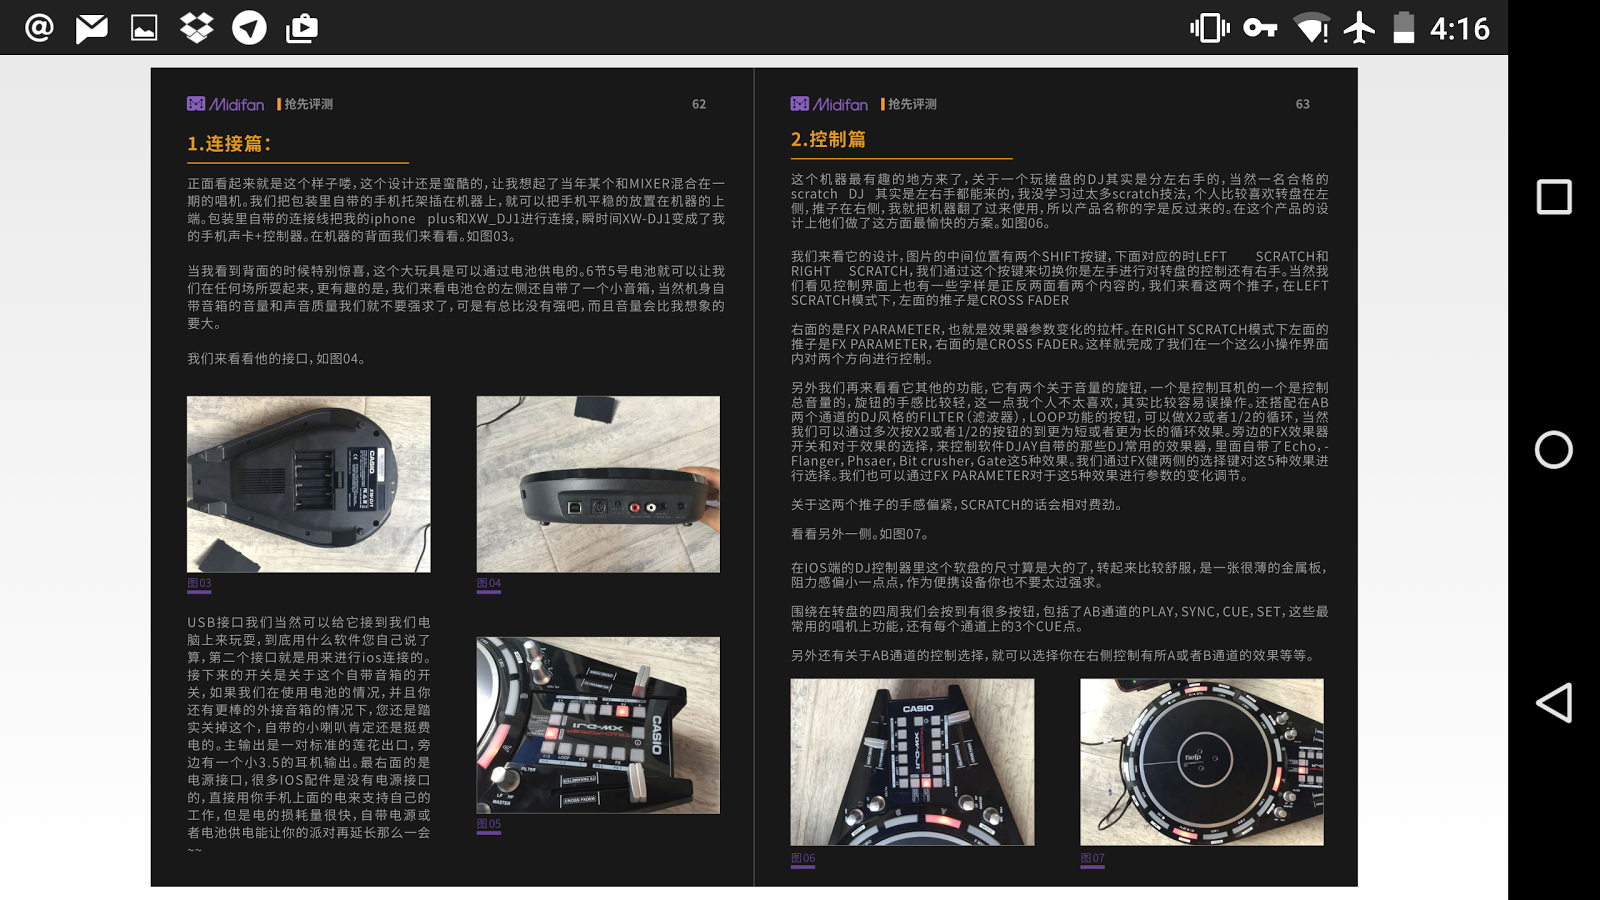 Midifan 网站- screenshot